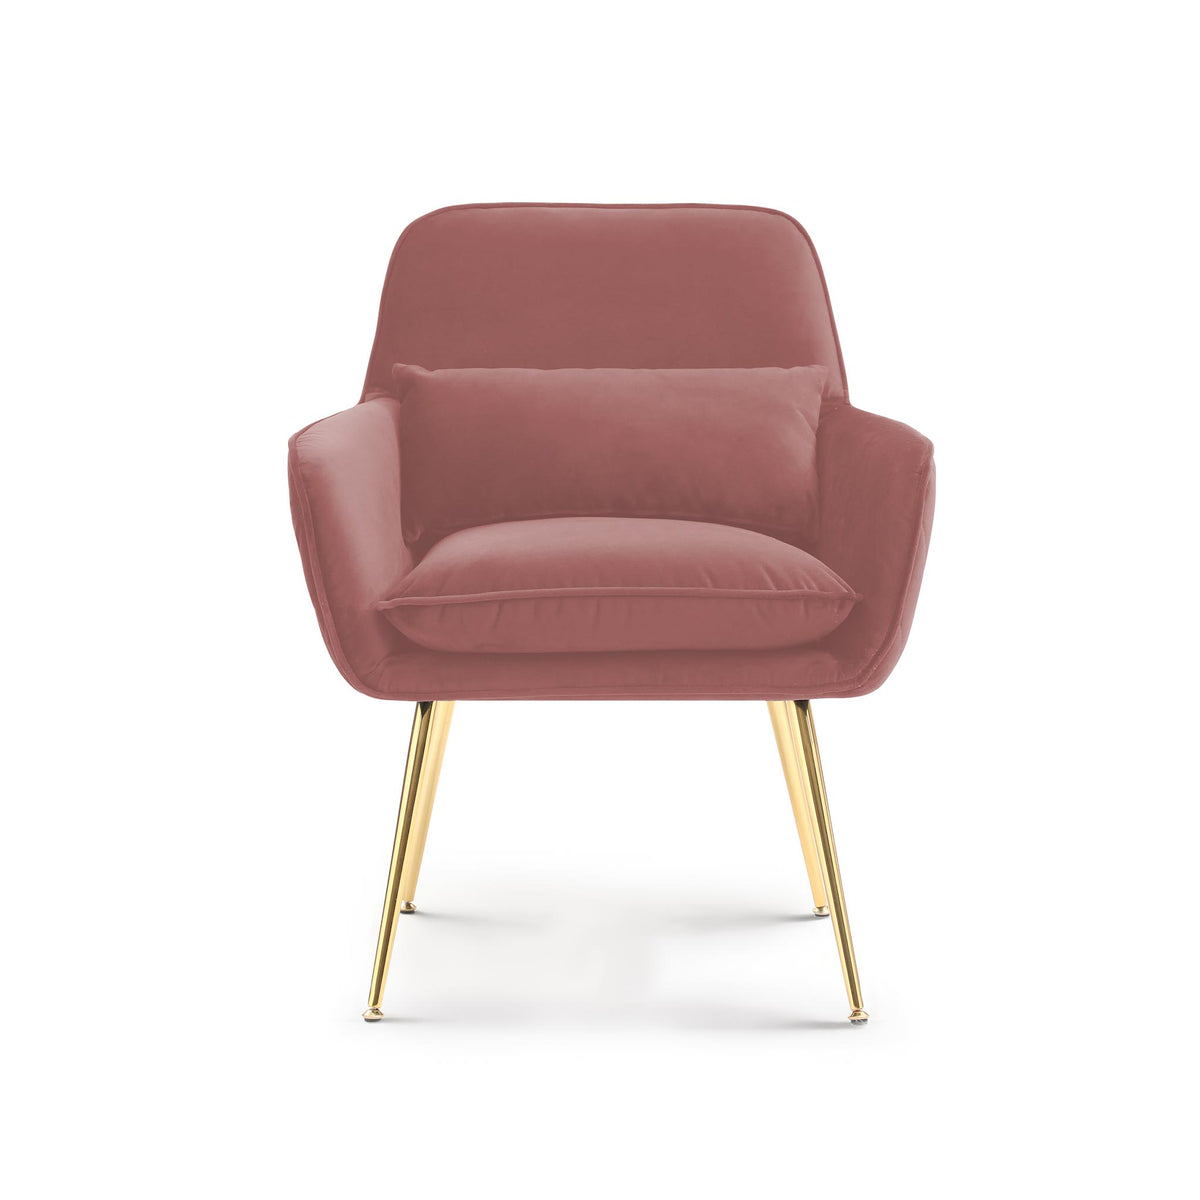 front view of the Diamond Blush Velvet Accent Chair